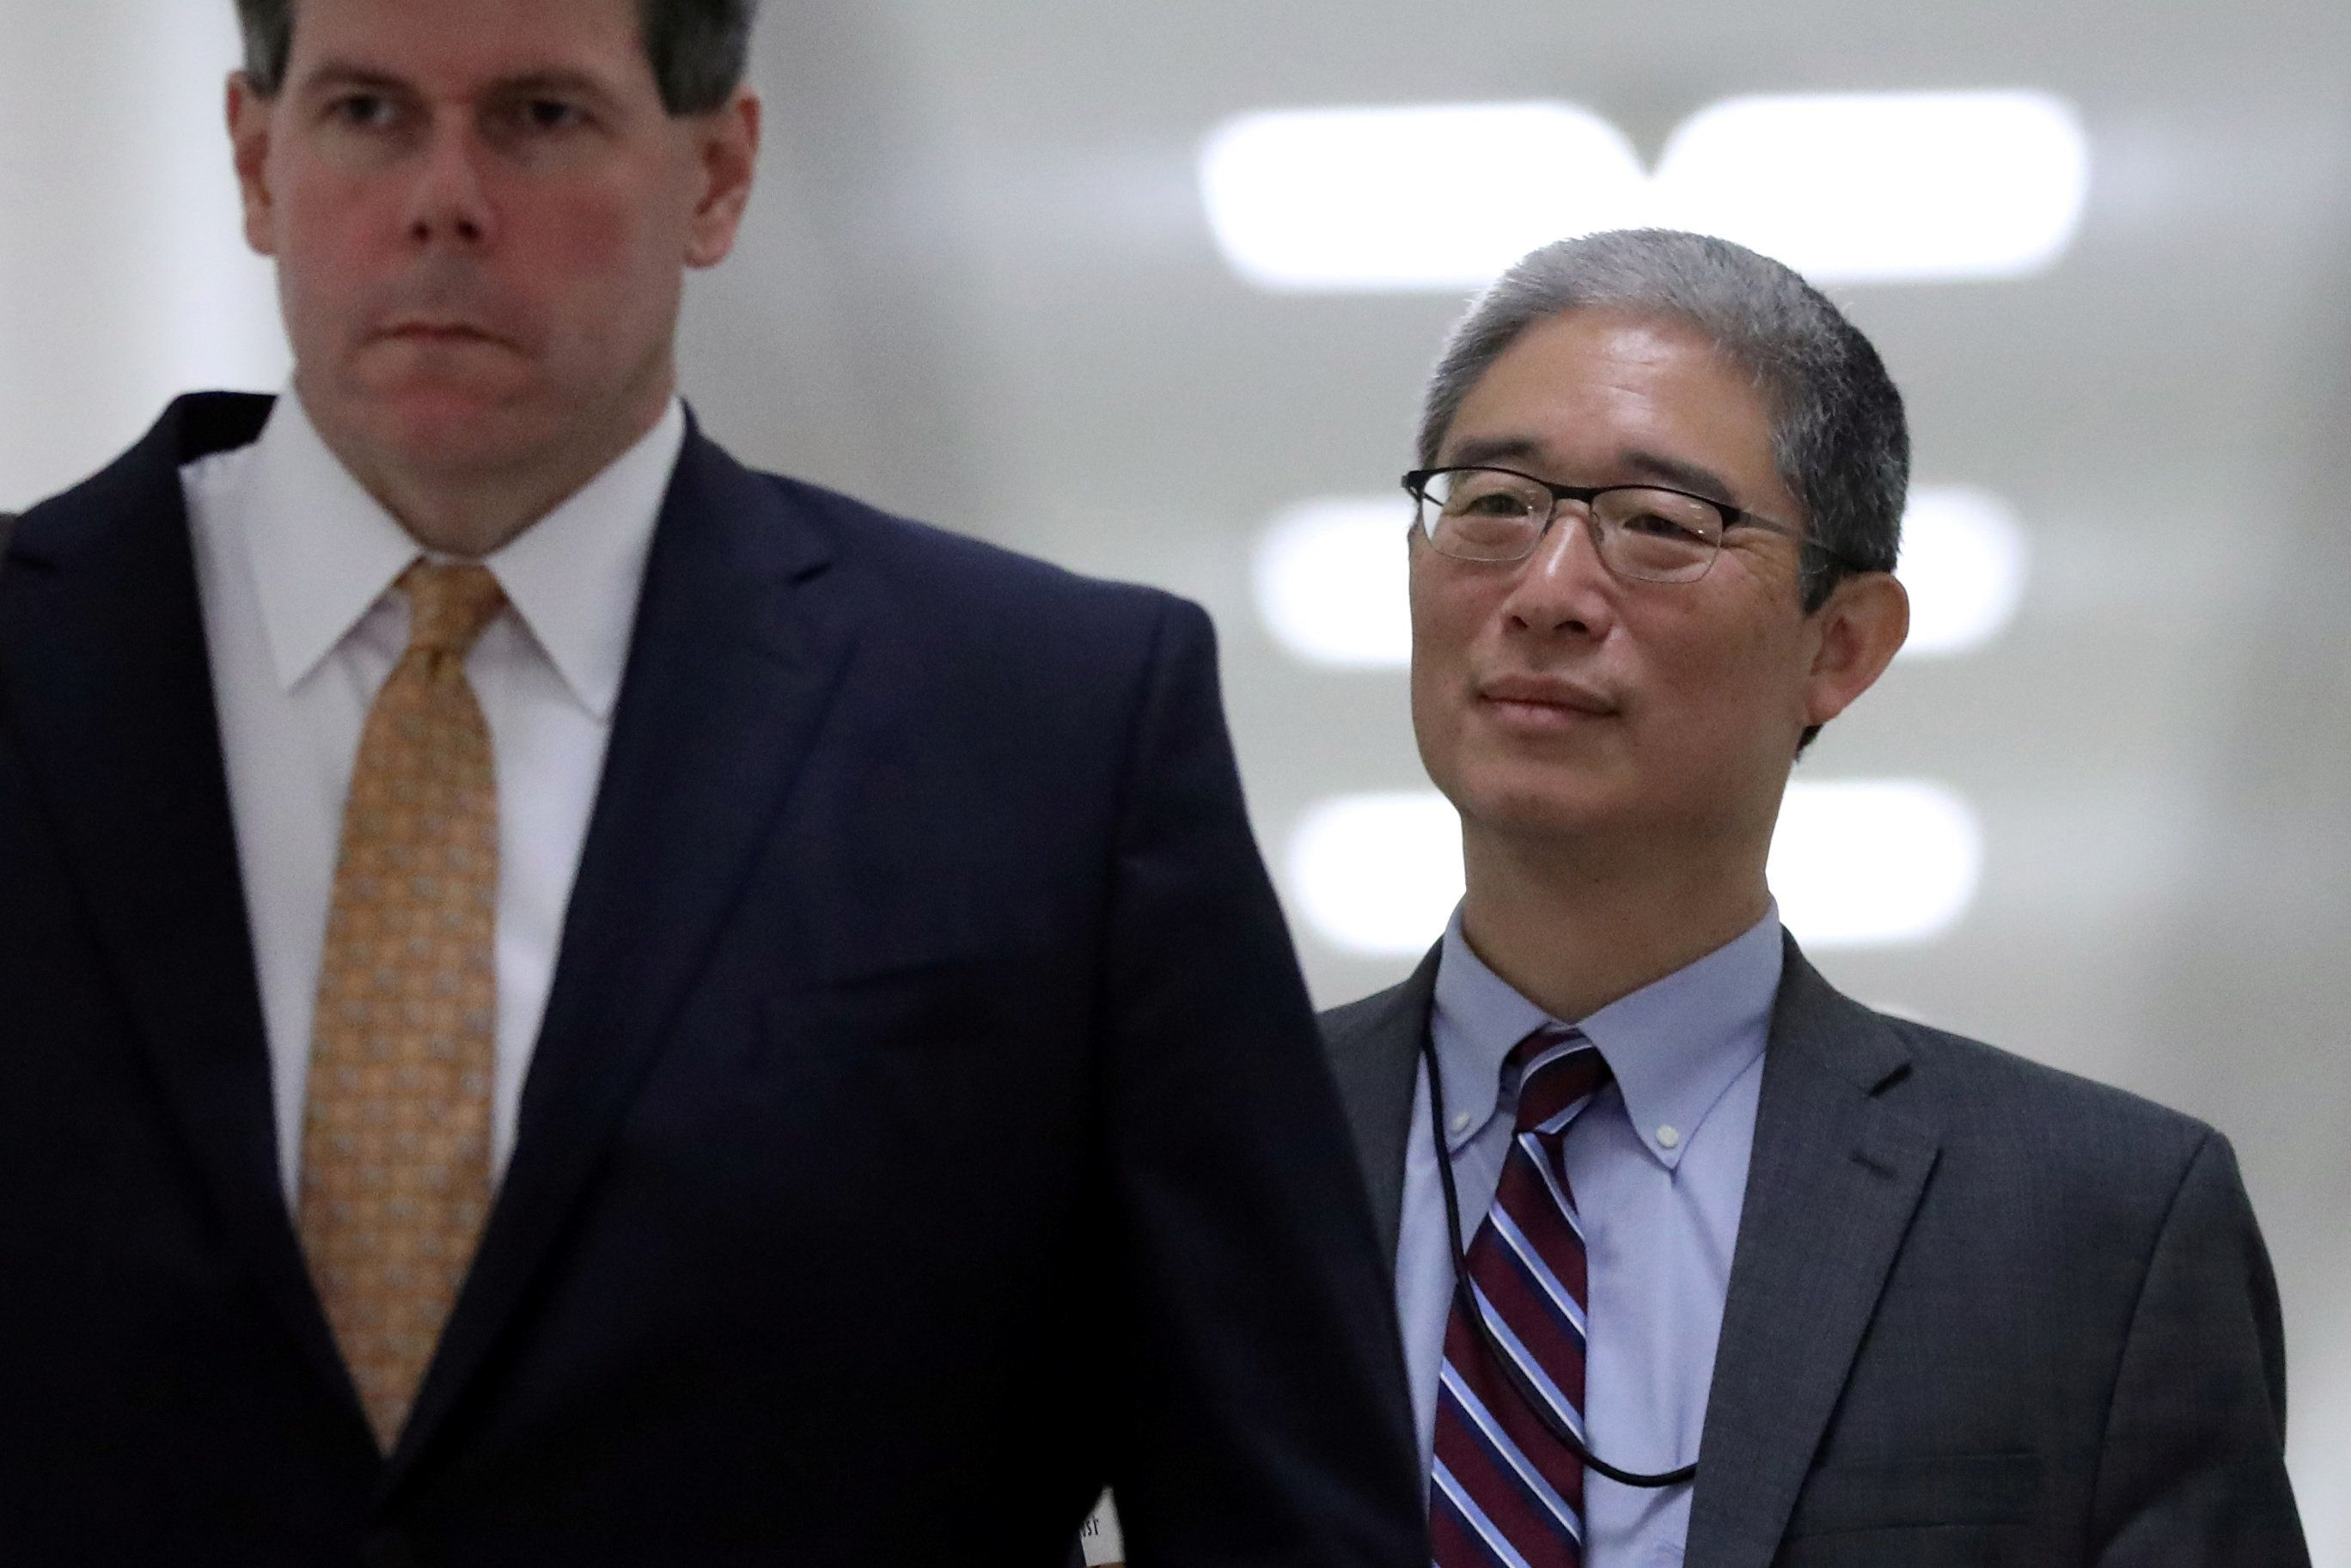 Pres. Trump Accuses Bruce, Nellie Ohr Of Colluding With Russia